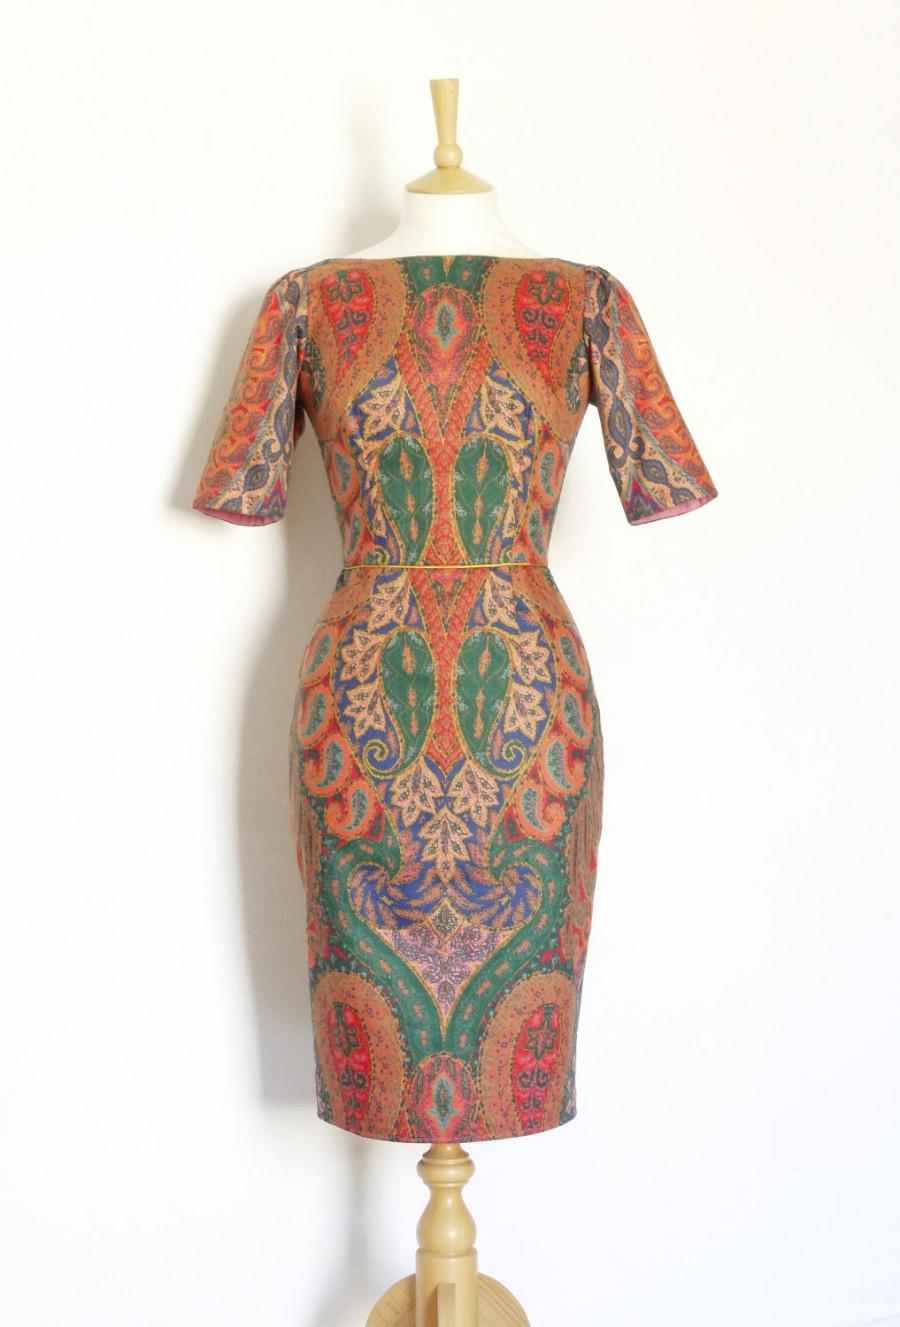 Mariage - Rich Paisley Print Cotton Sabrina Bodice Pencil Skirt Dress - Made by Dig For Victory